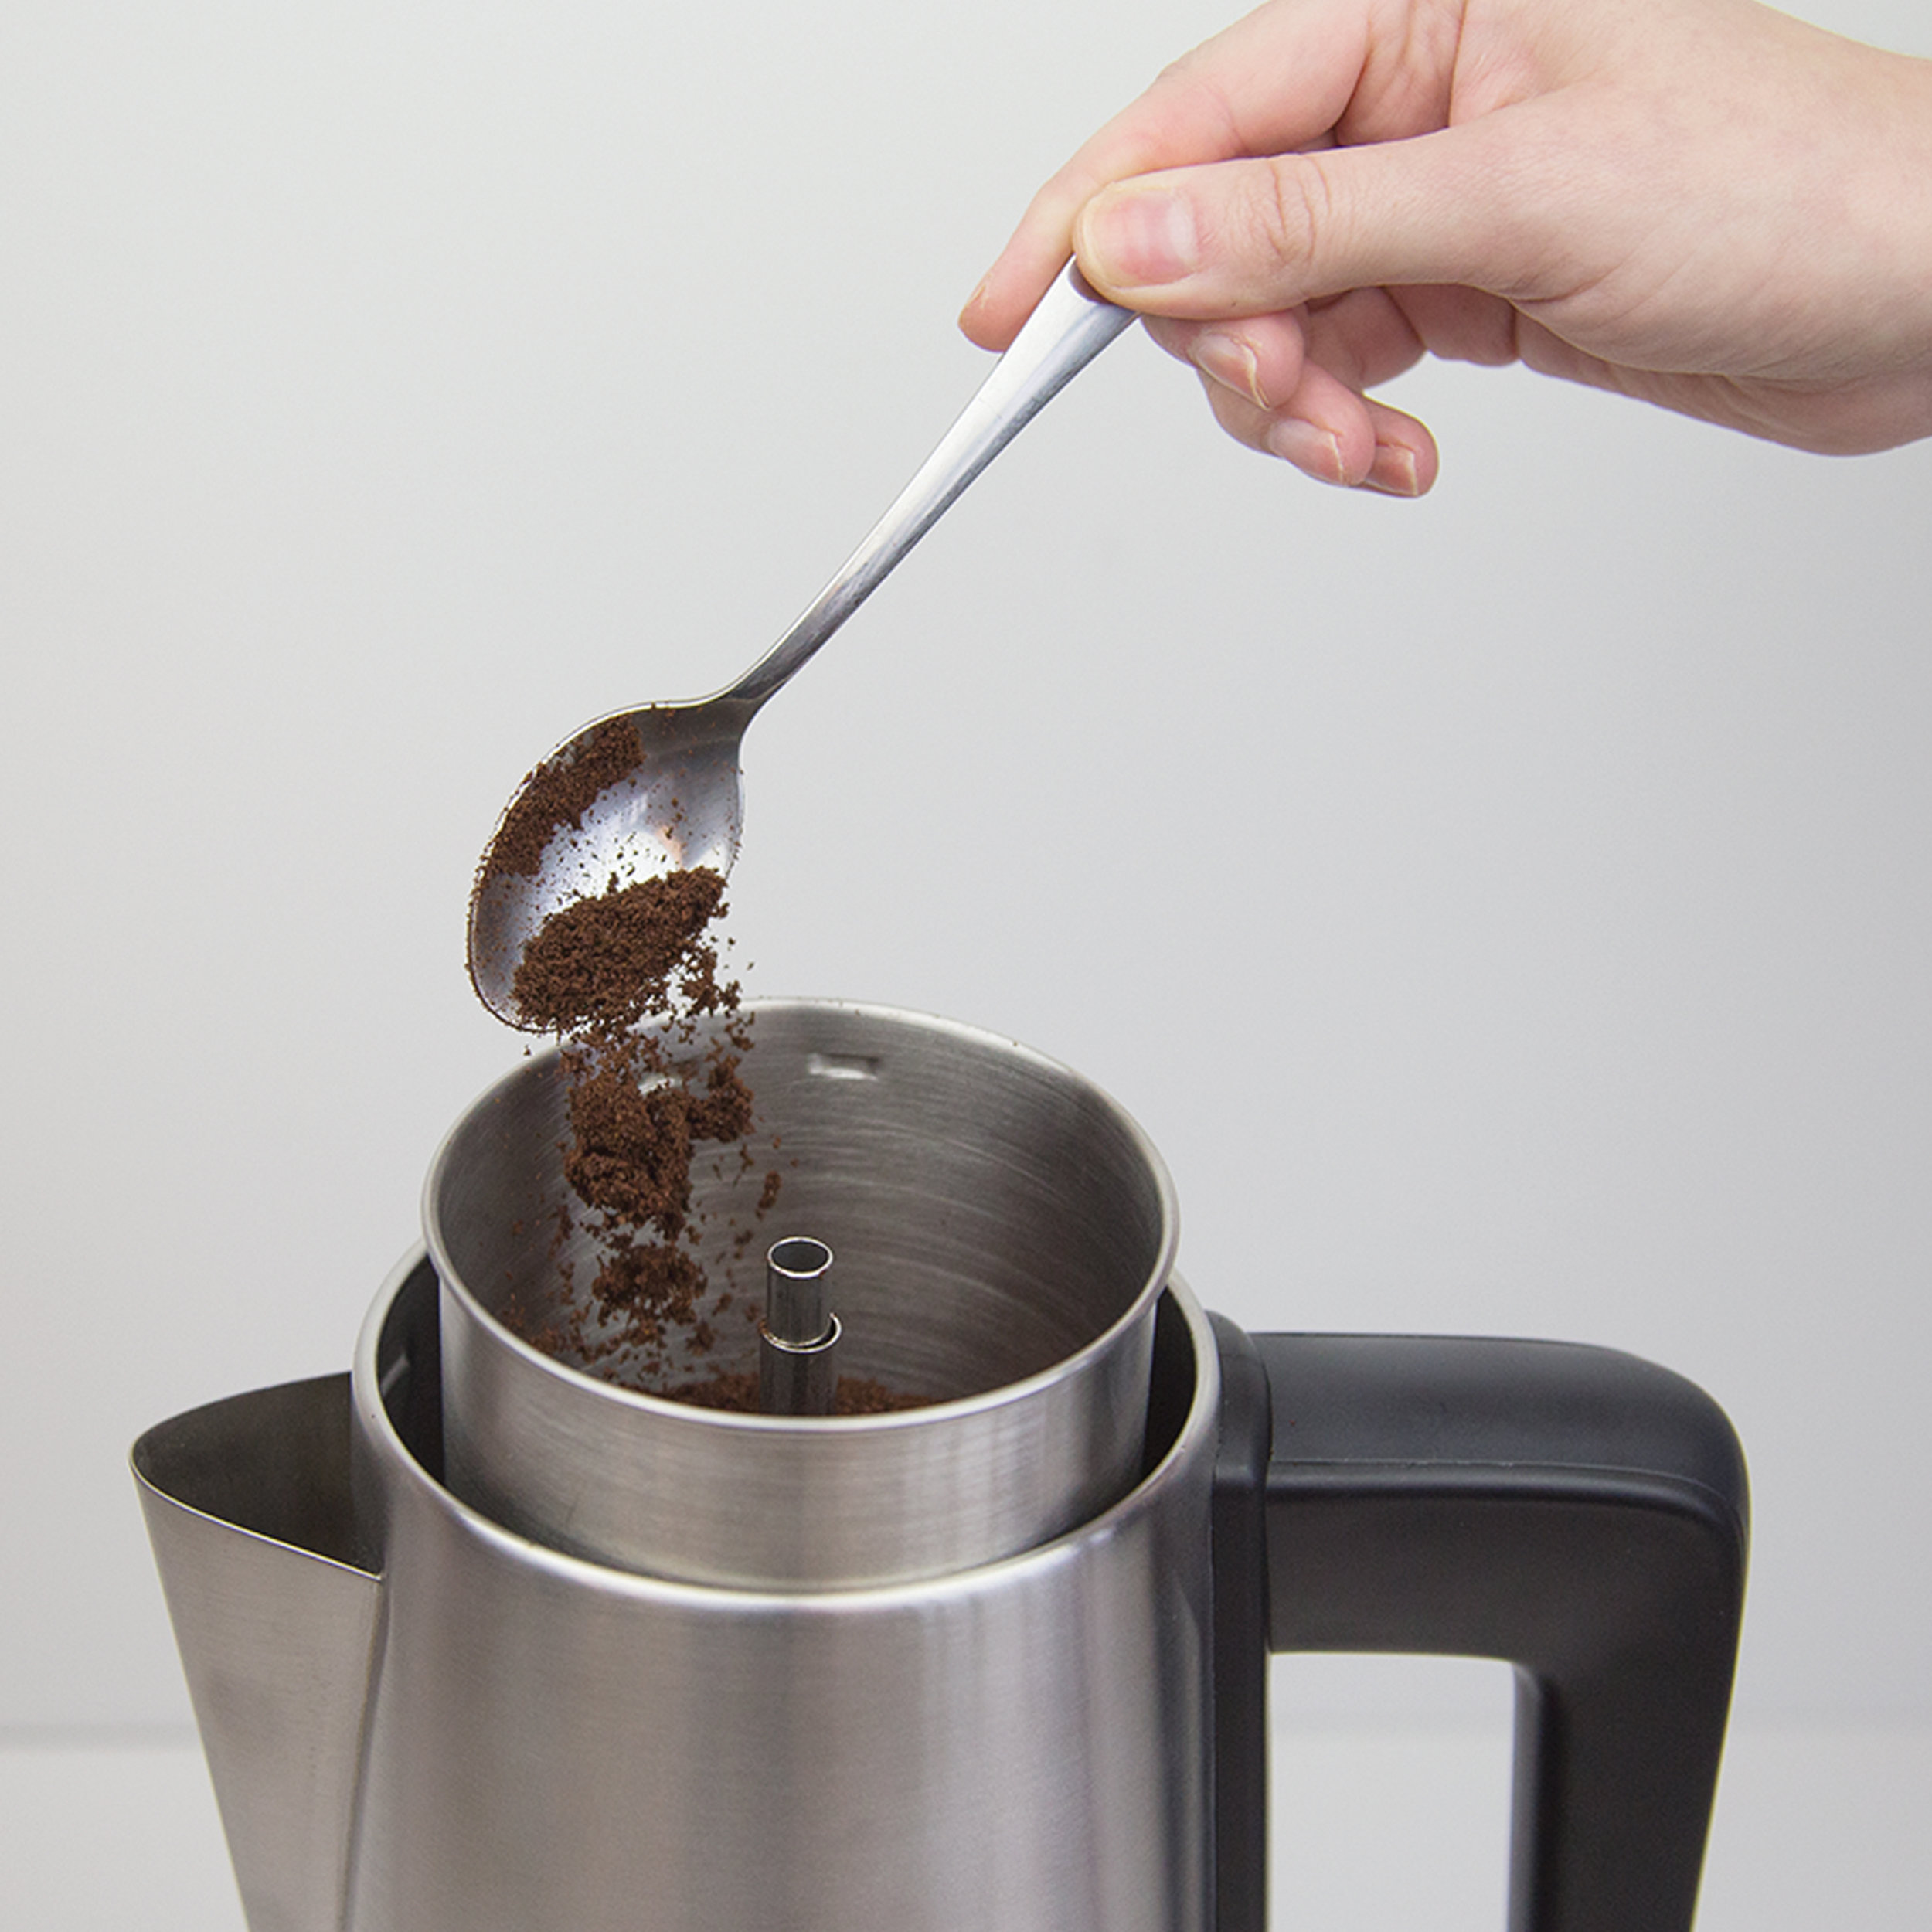 Putting a spoon of grind coffee in the 1.5L Electric Coffee Percolator